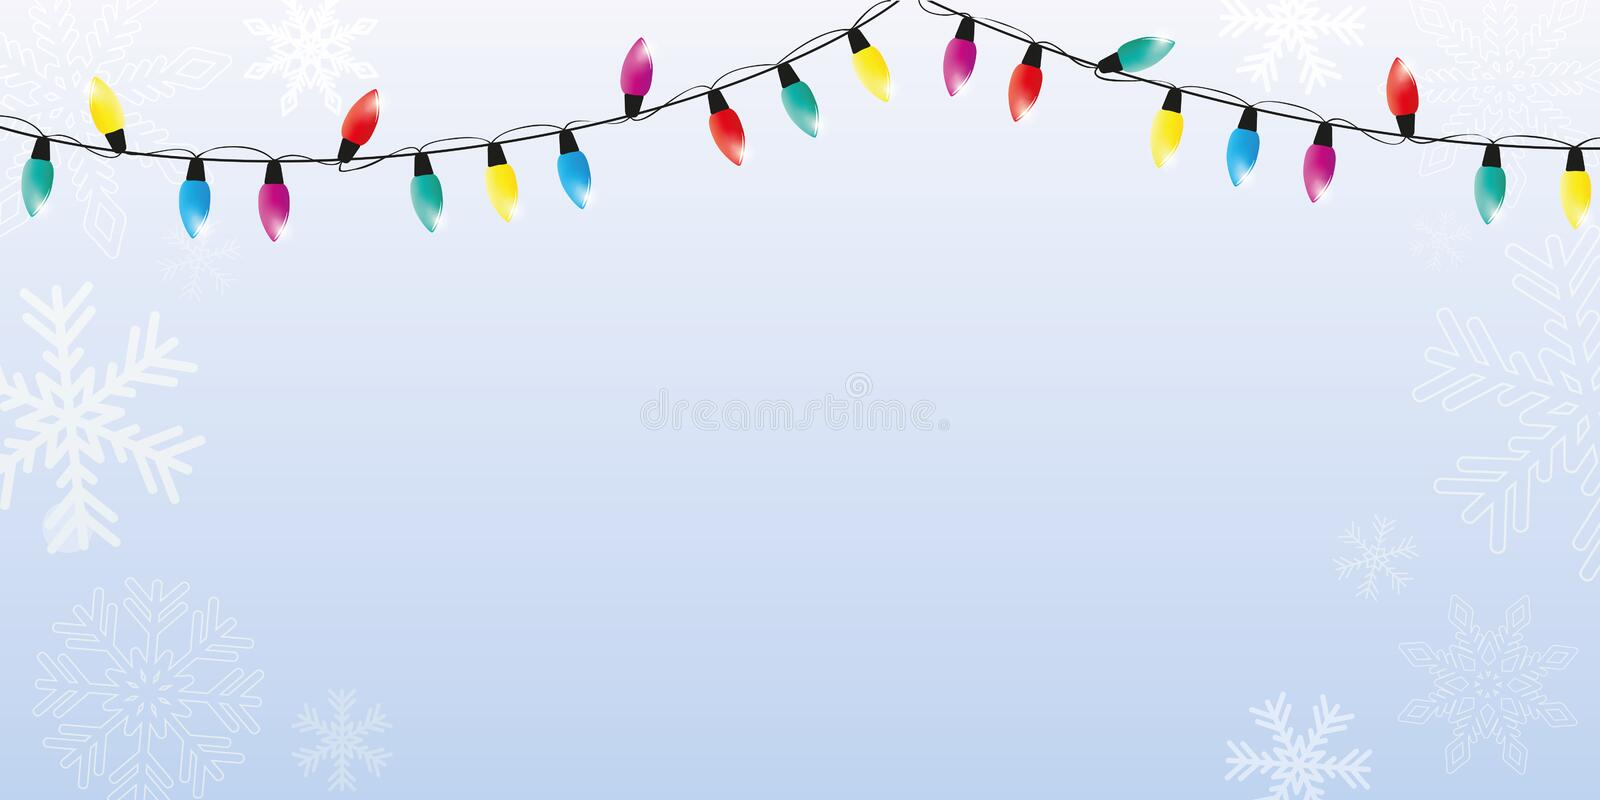 Christmas winter background with snowflakes and colorful fairy lights vector illustration